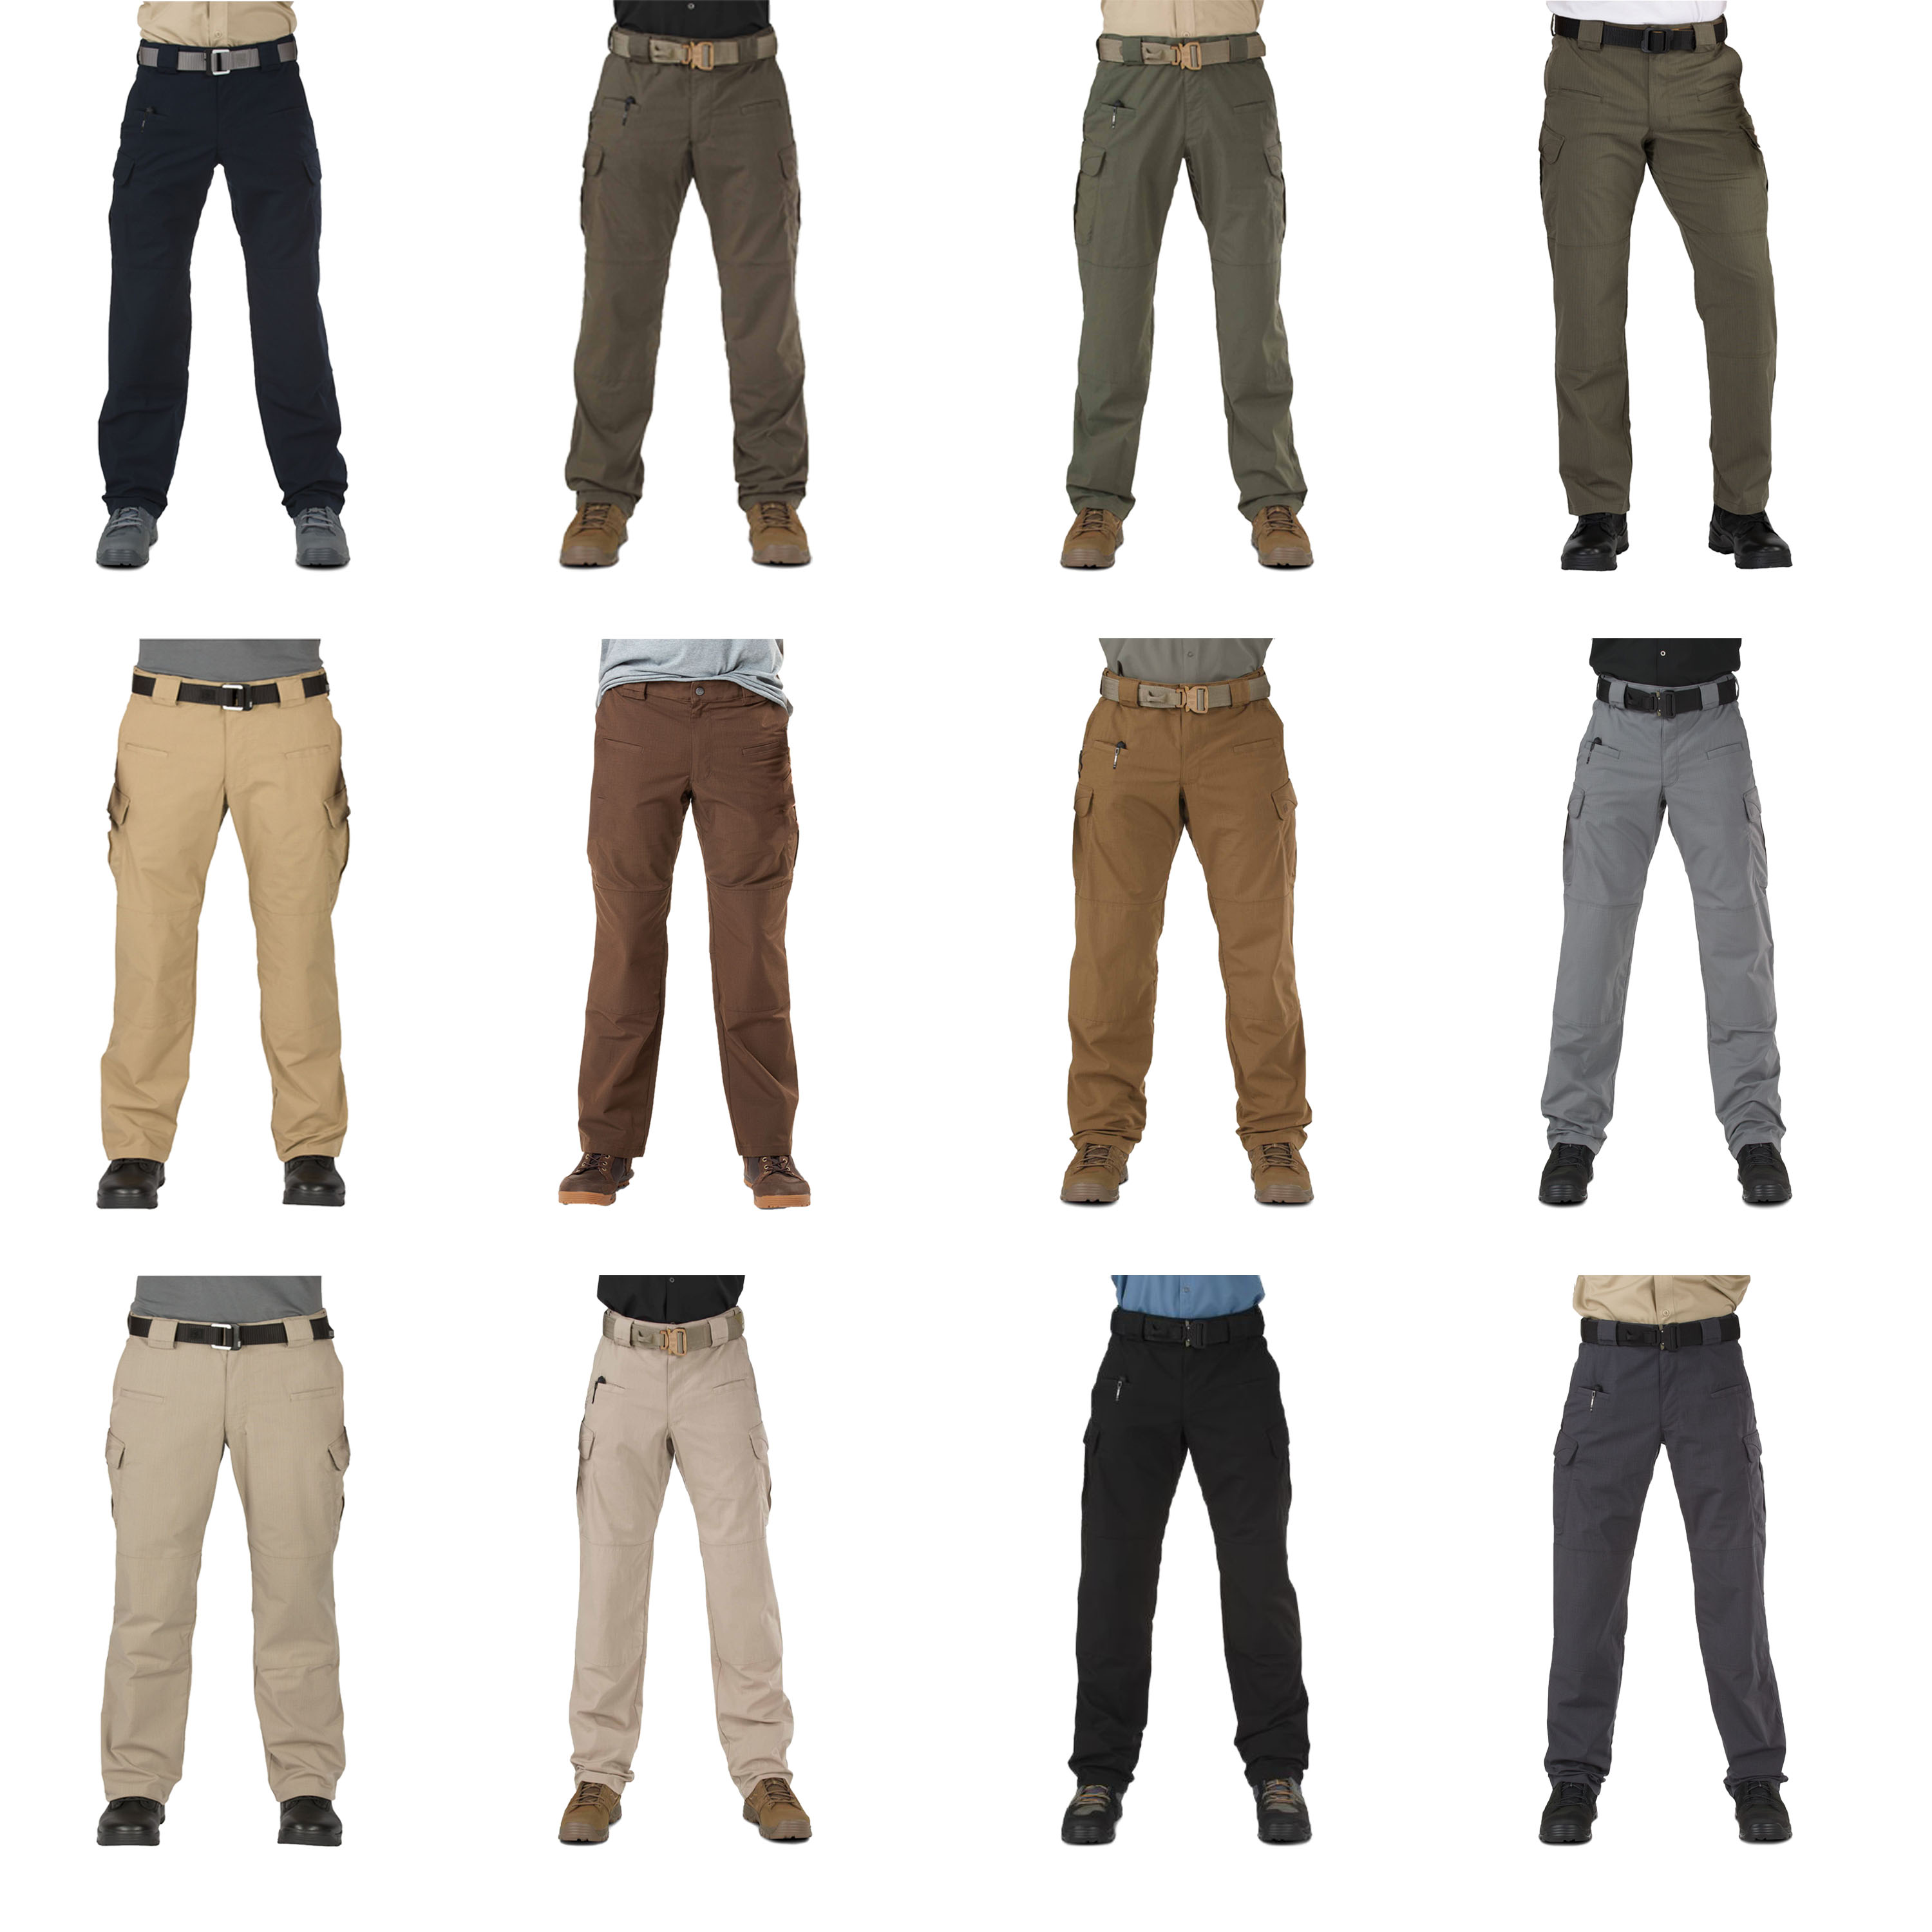 Two Way Mechanical Stretch 5.11 Mens Stryke TDU High-Performance Tactical Pant Style 74433